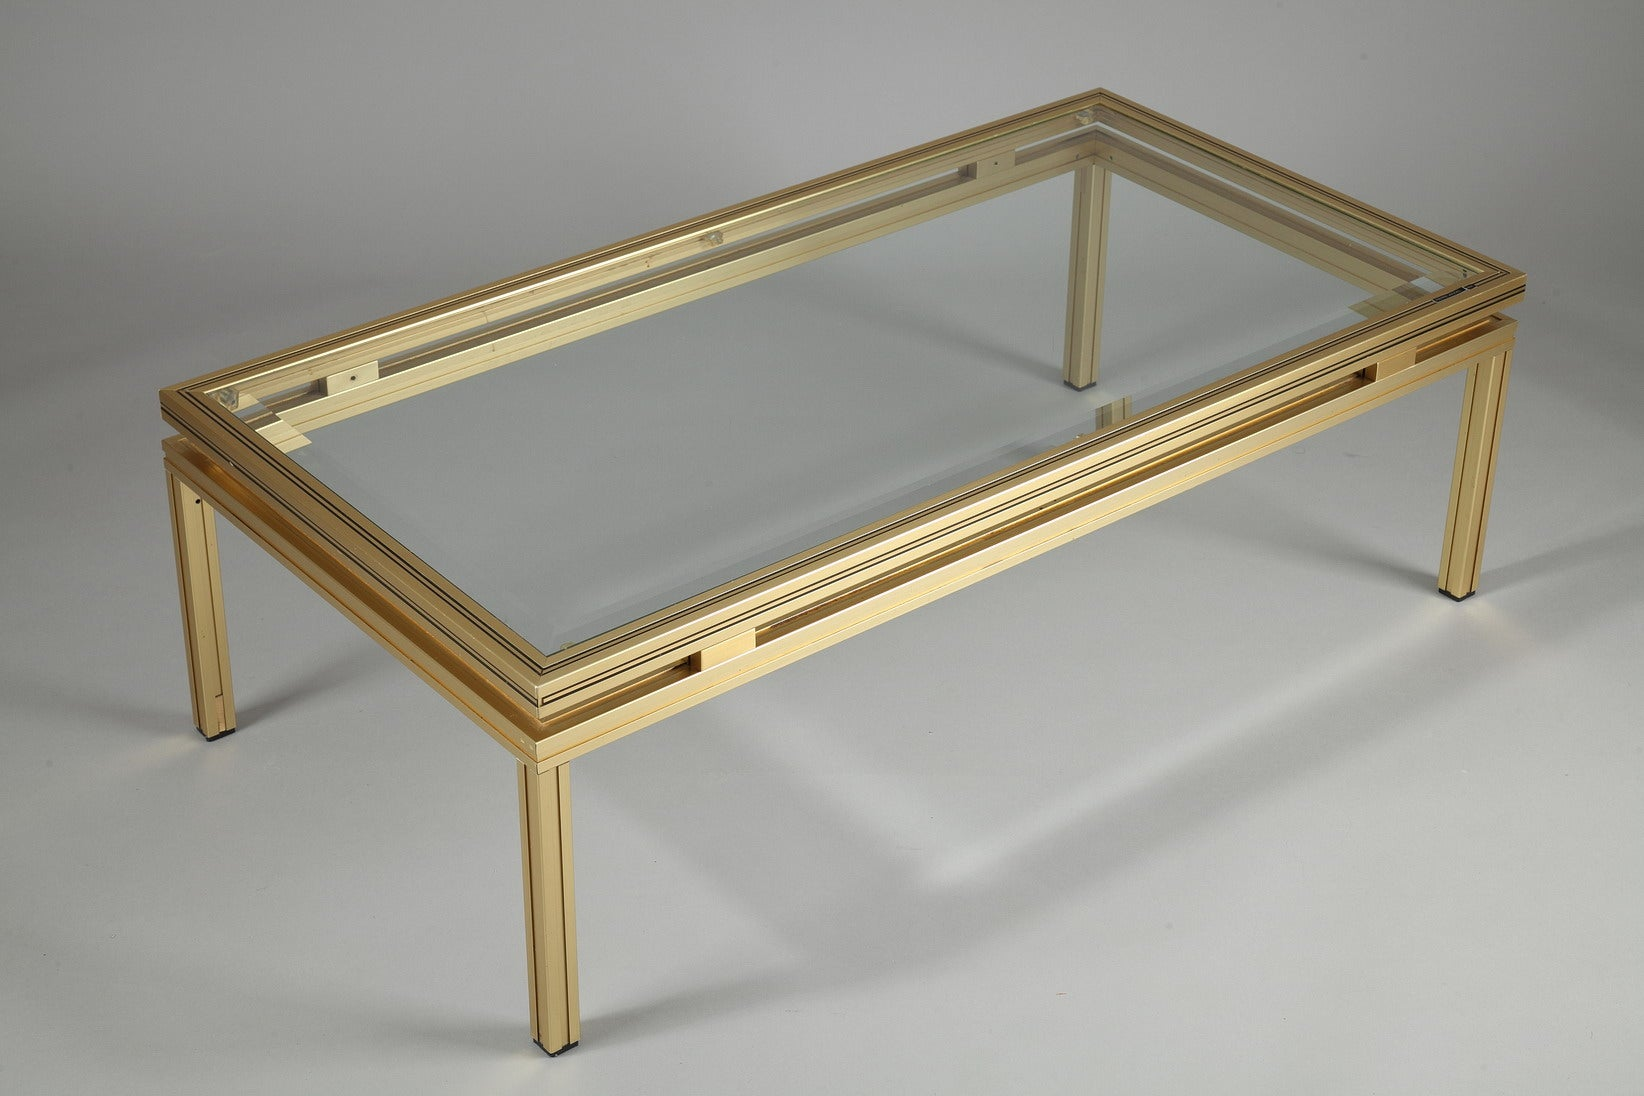 Pierre Vandel Rectangular Coffee Table In Brass Plated Aluminium With Glass Top